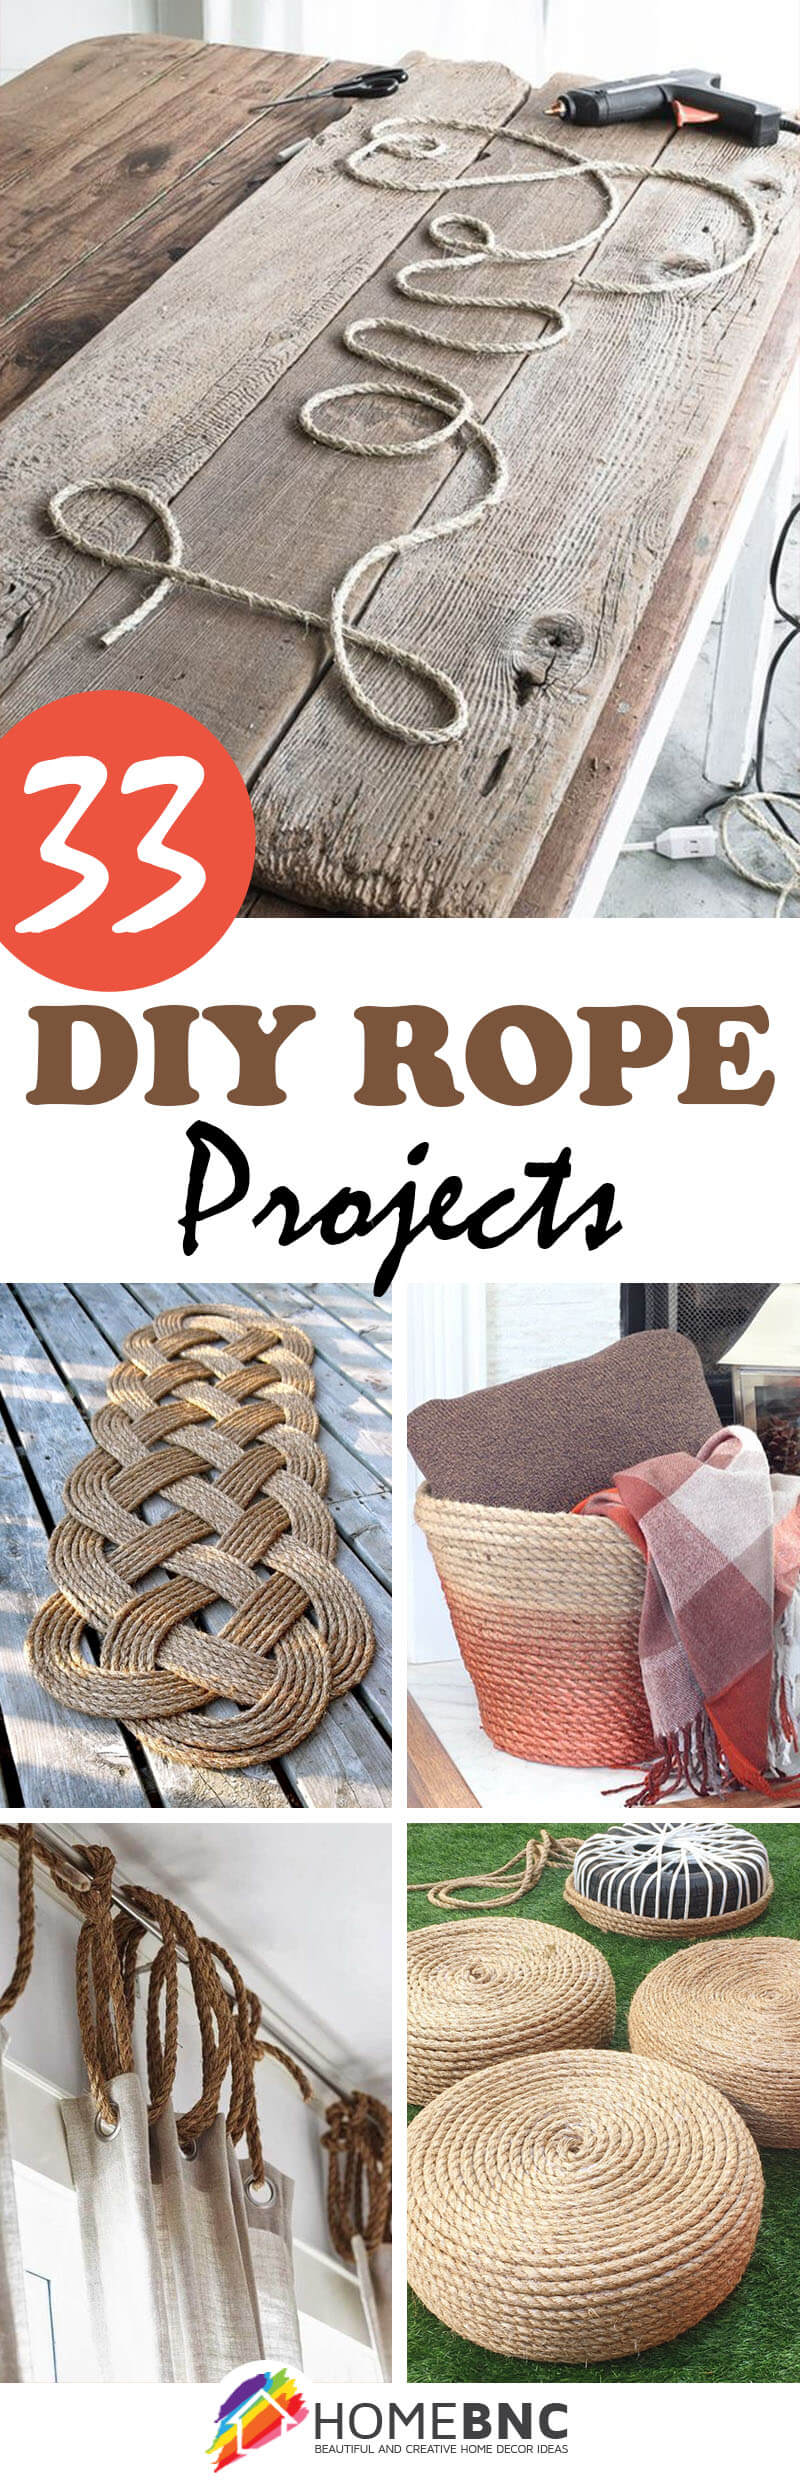 DIY Rope Ideas